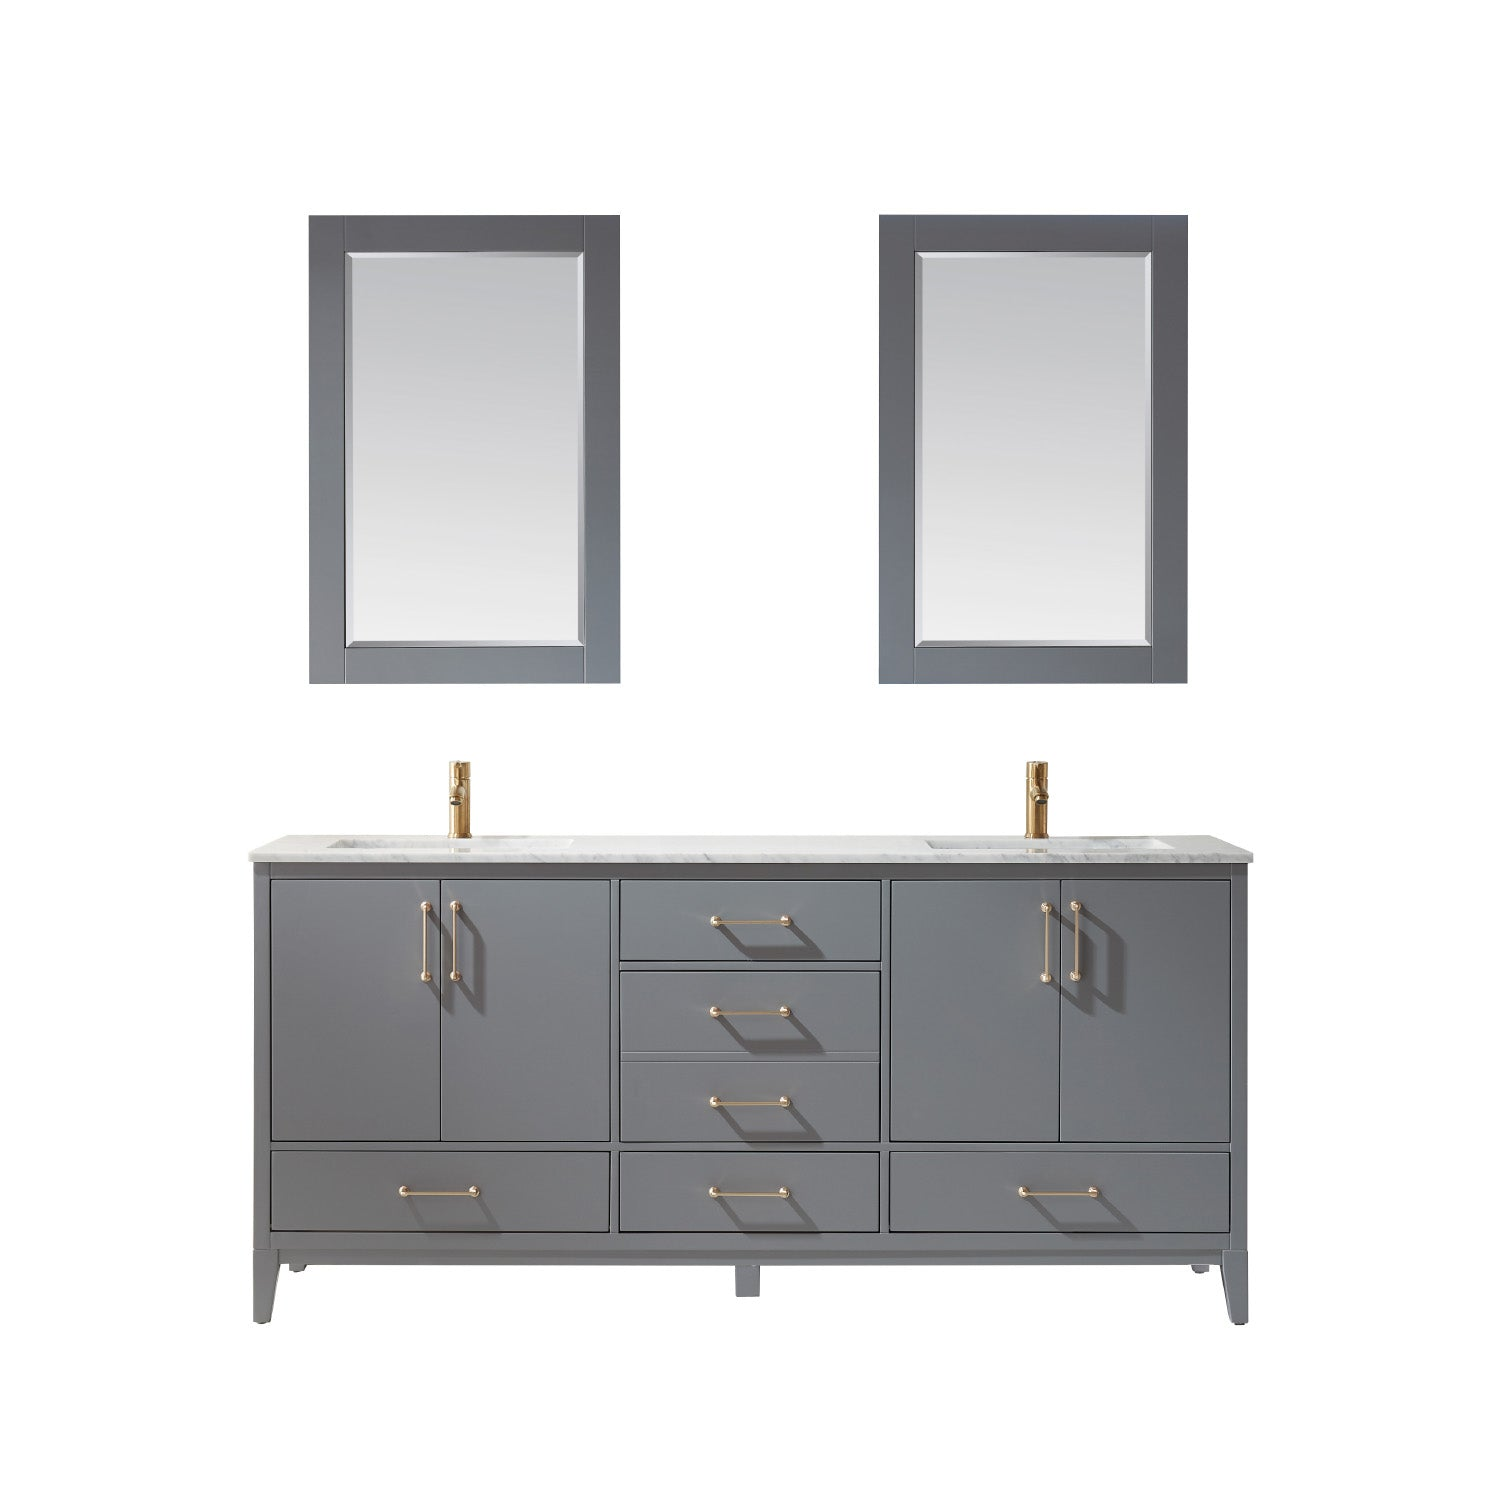 "Sutton 72"" Double Bathroom Vanity Set in Gray and Carrara White Marble Countertop with Mirror"